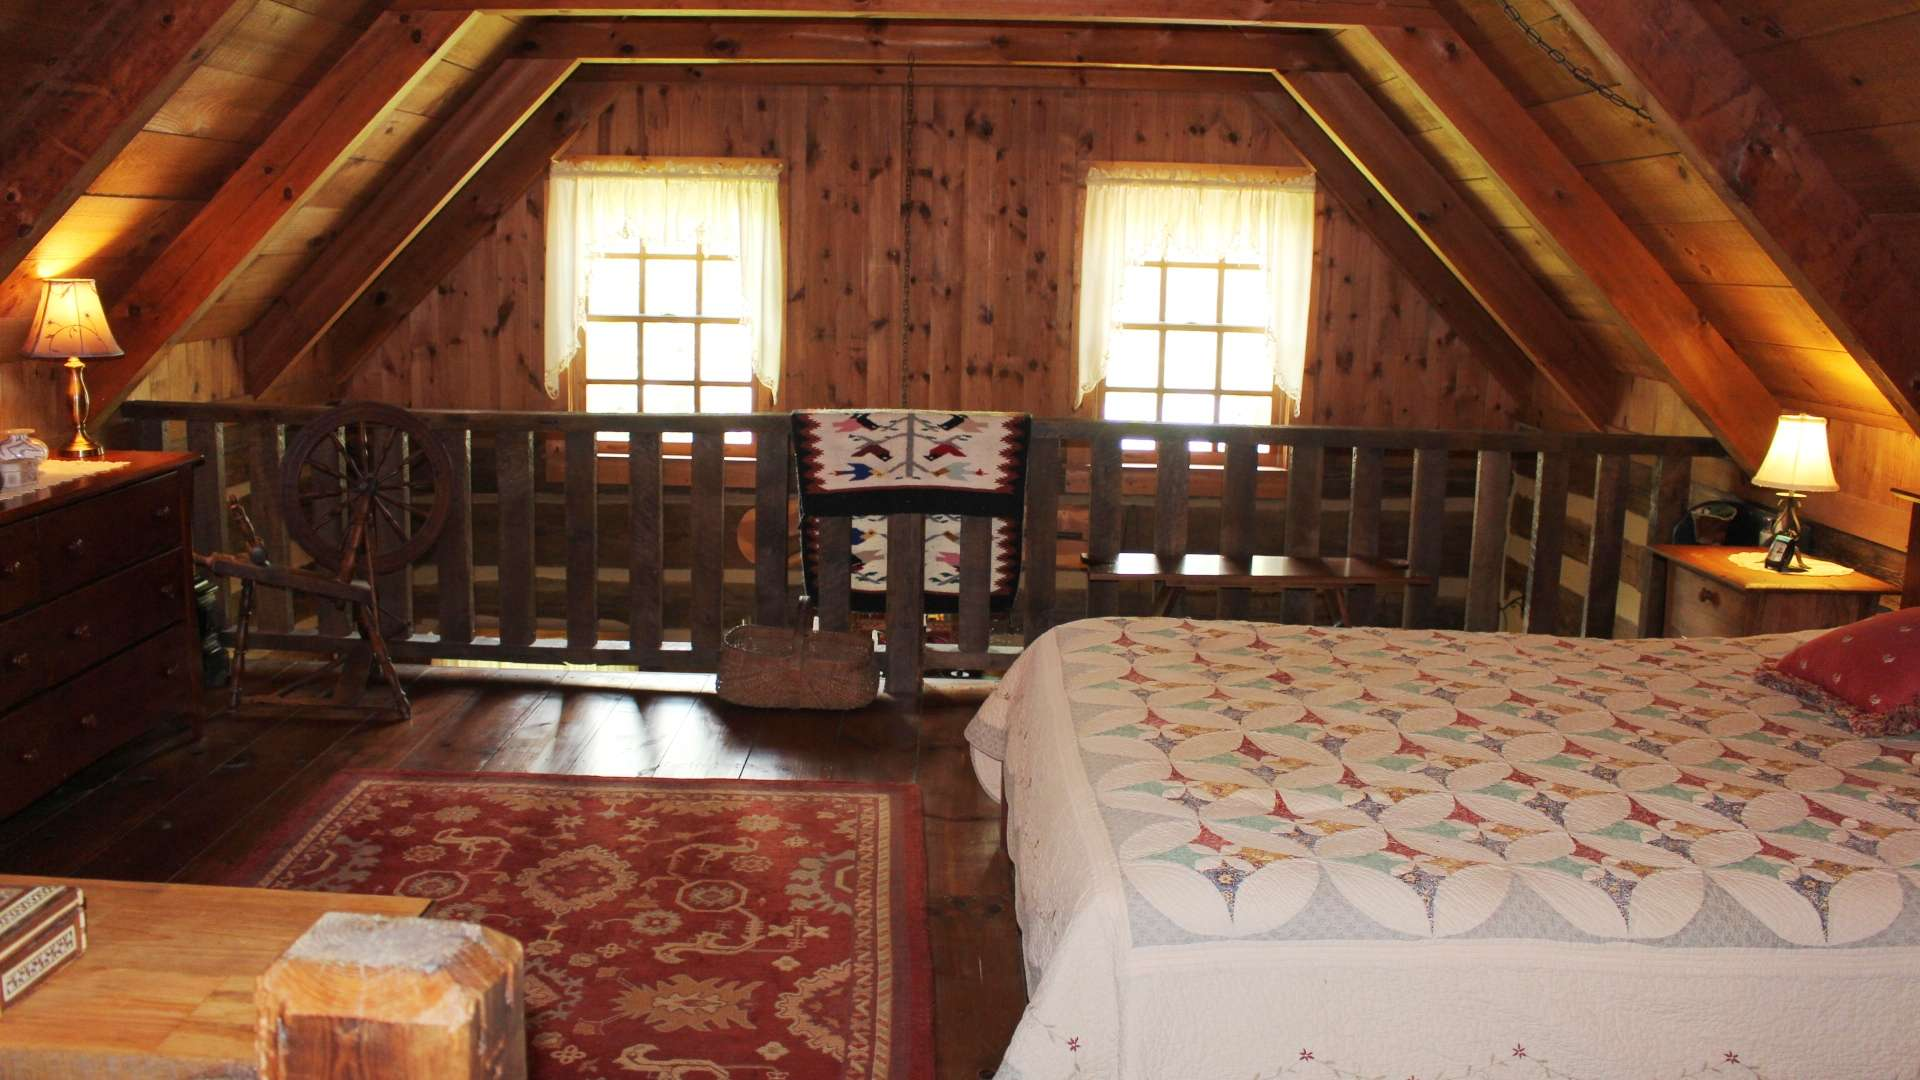 The upper level loft area overlooks the living area and currently used as the master suite.